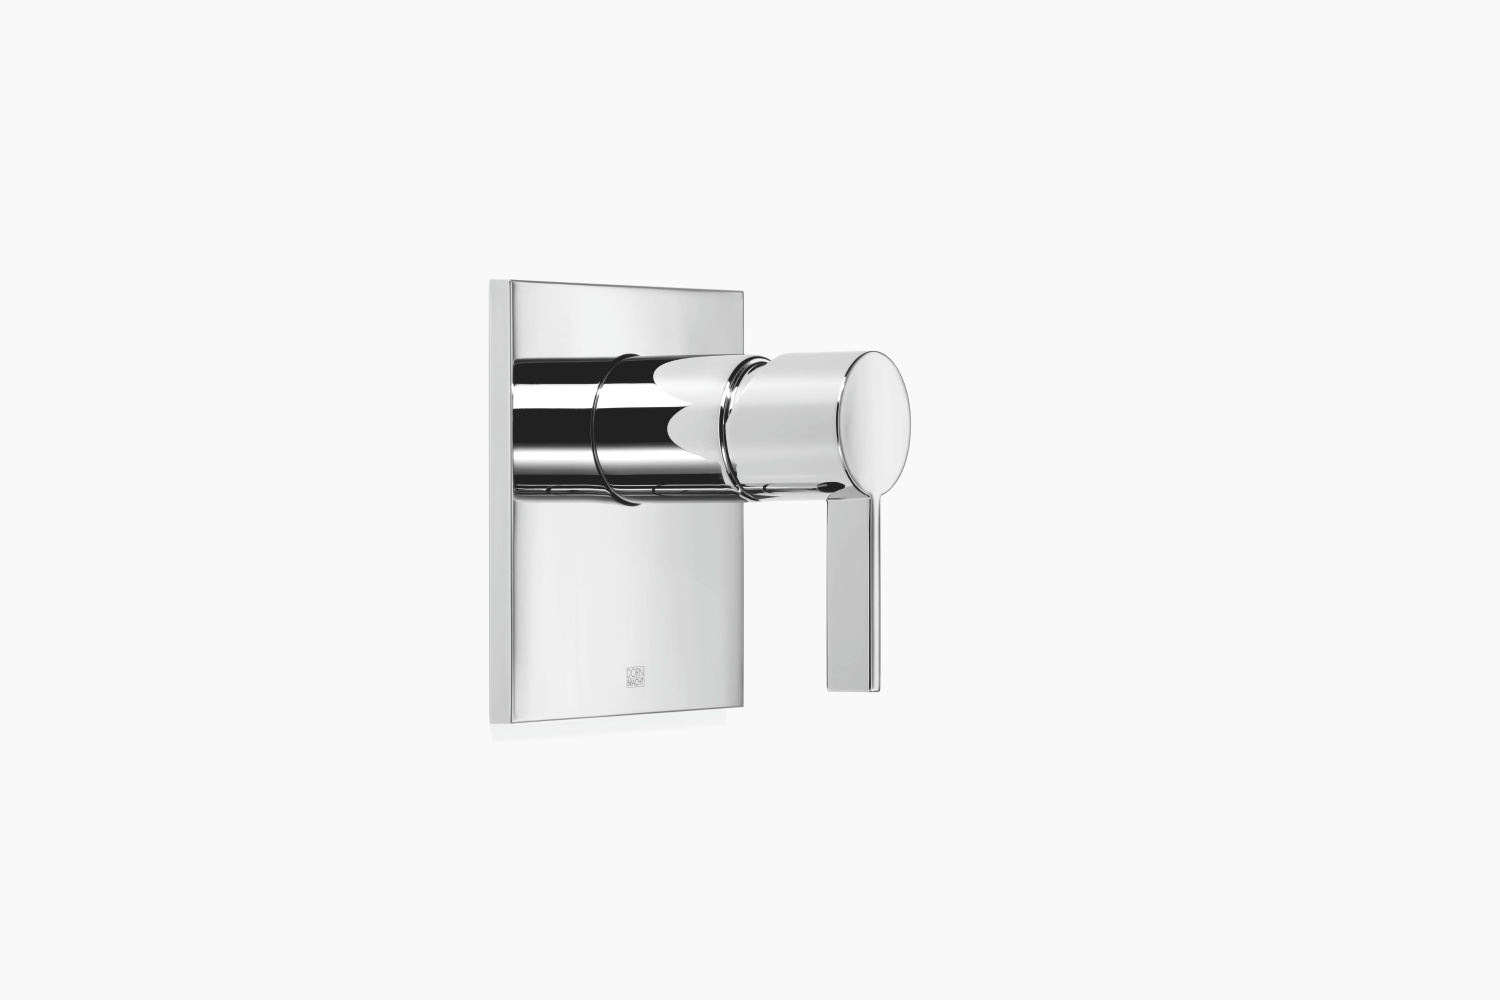 xSTREAM Concealed single-lever mixer without diverter - platinum